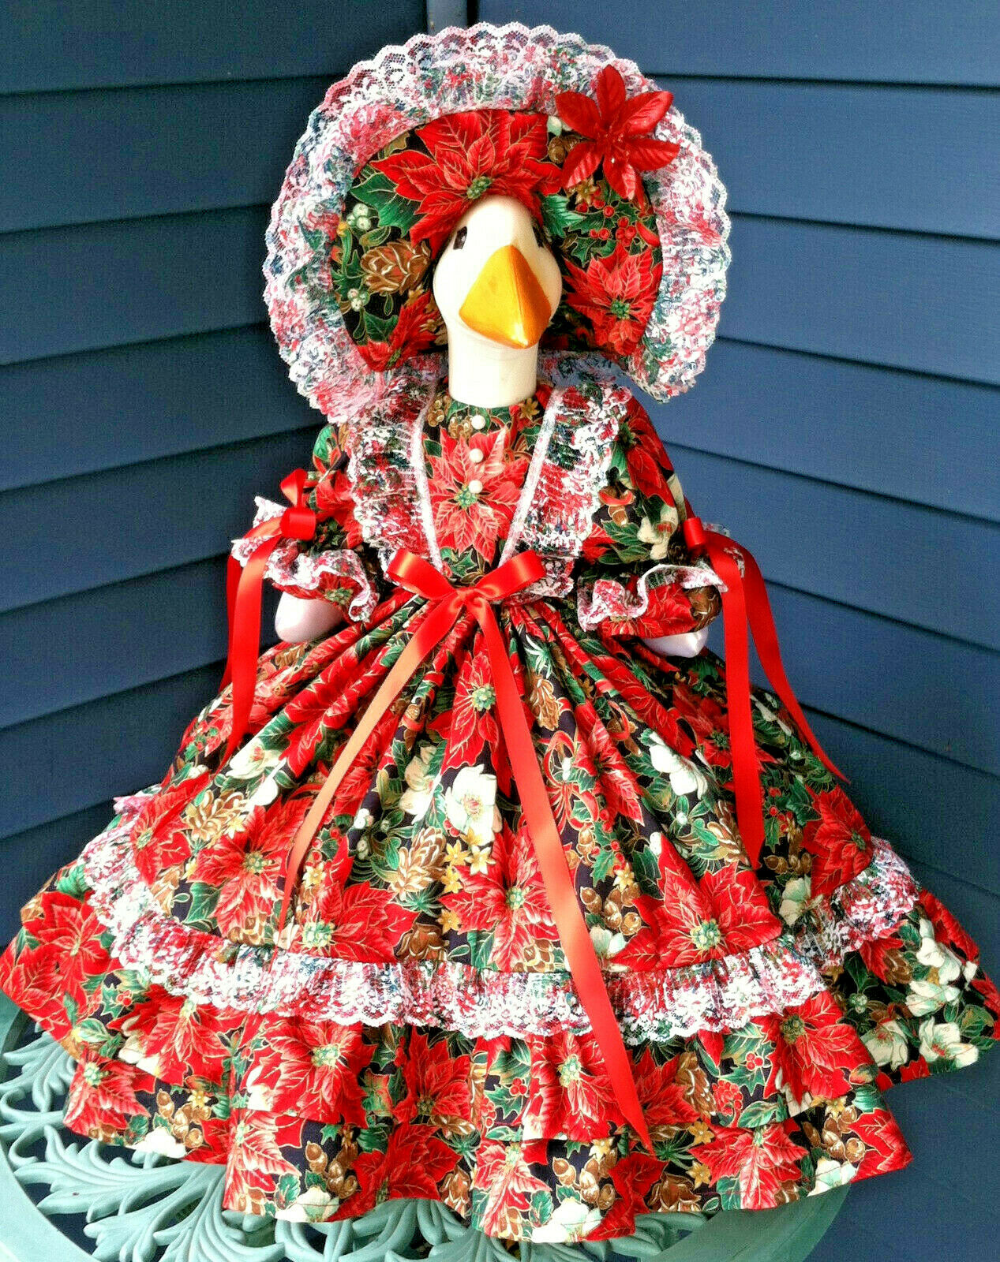 Details About Goose Outfit Christmas Pointsettias And Florals Goose Clothes By Linda Goose Clothes Clothes Outfits